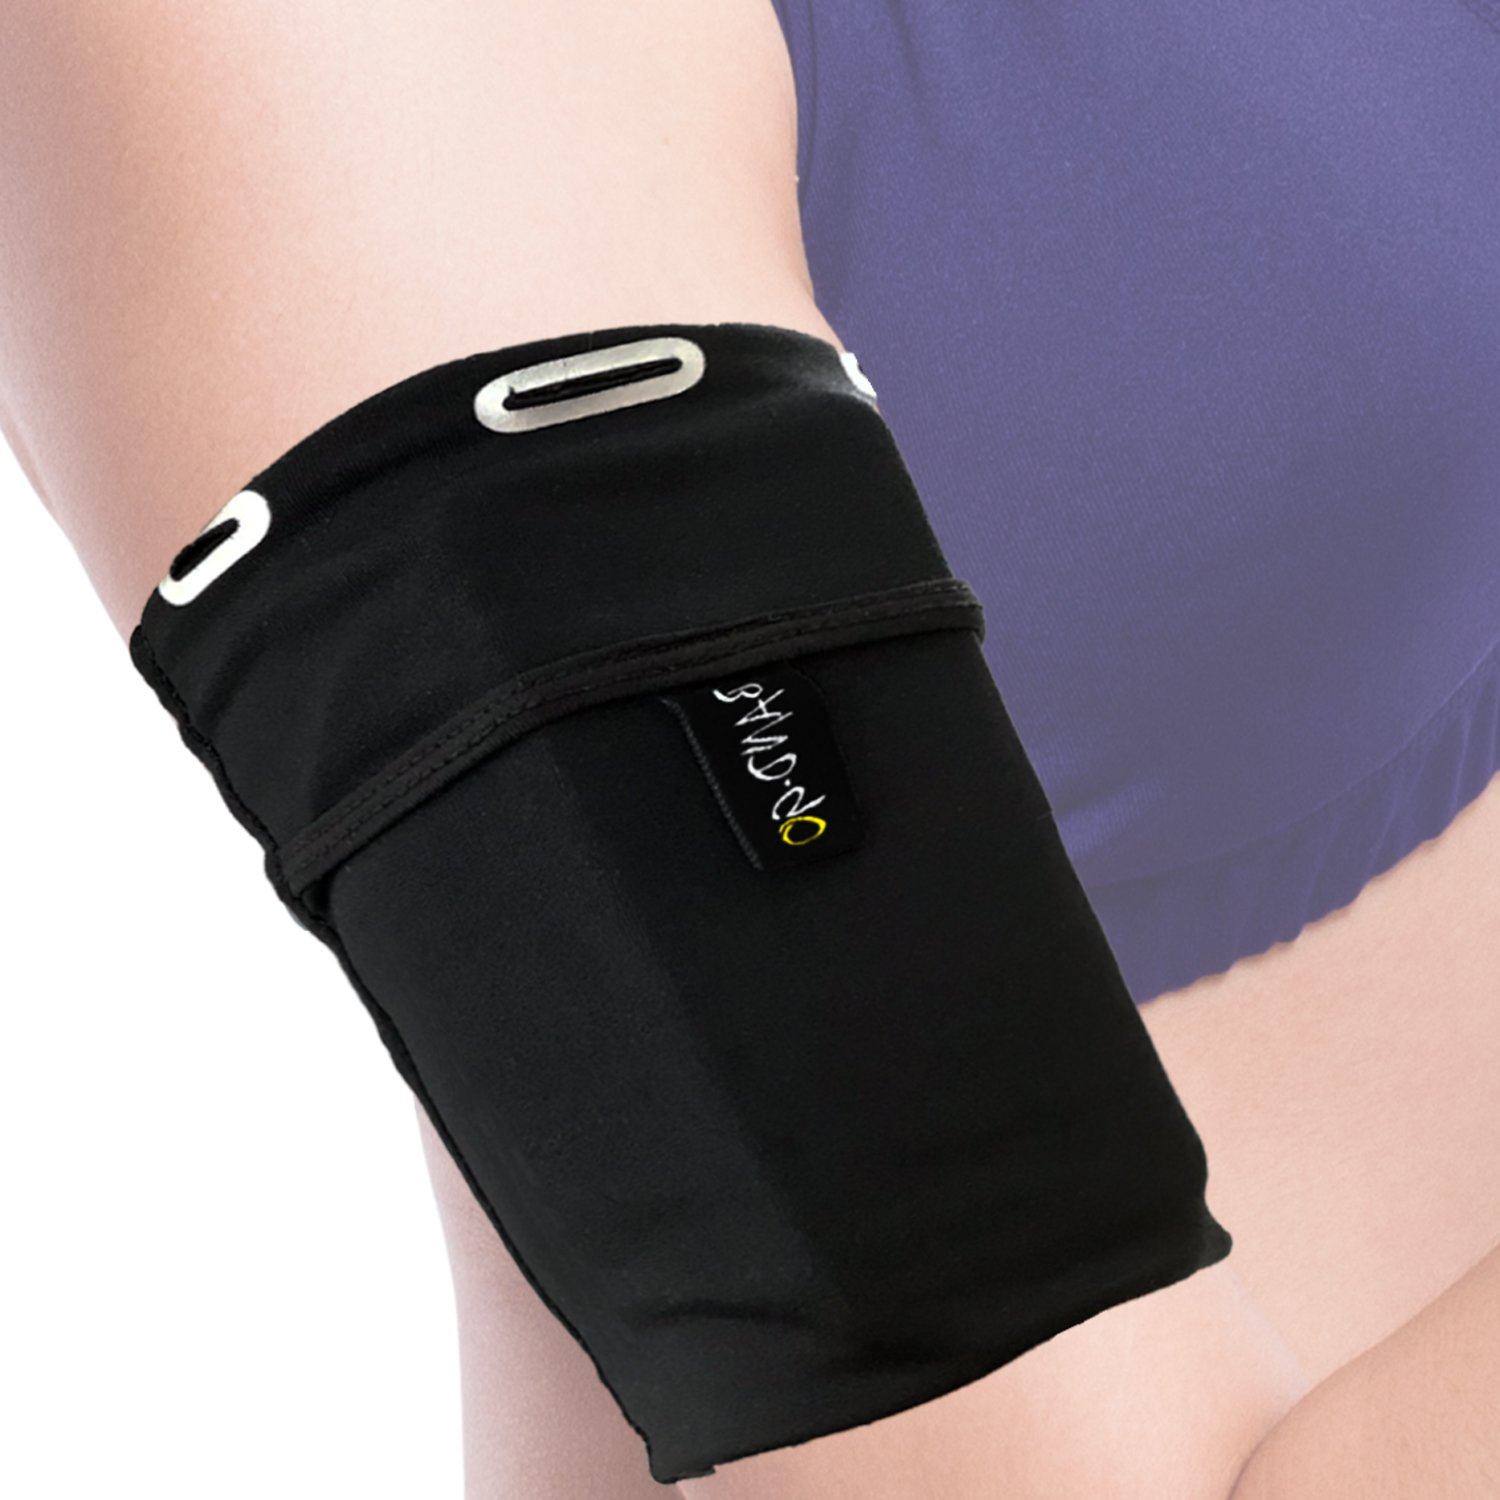 Universal Sports Armband for All Phones (iPhone X/8/7/6/XS/XR/Max/Plus,Samsung Galaxy S10/S9/S8/S7/Plus & LG,Google,Sony & More). Exercise Arm Holder for Running, Fitness and Gym Workouts. Medium